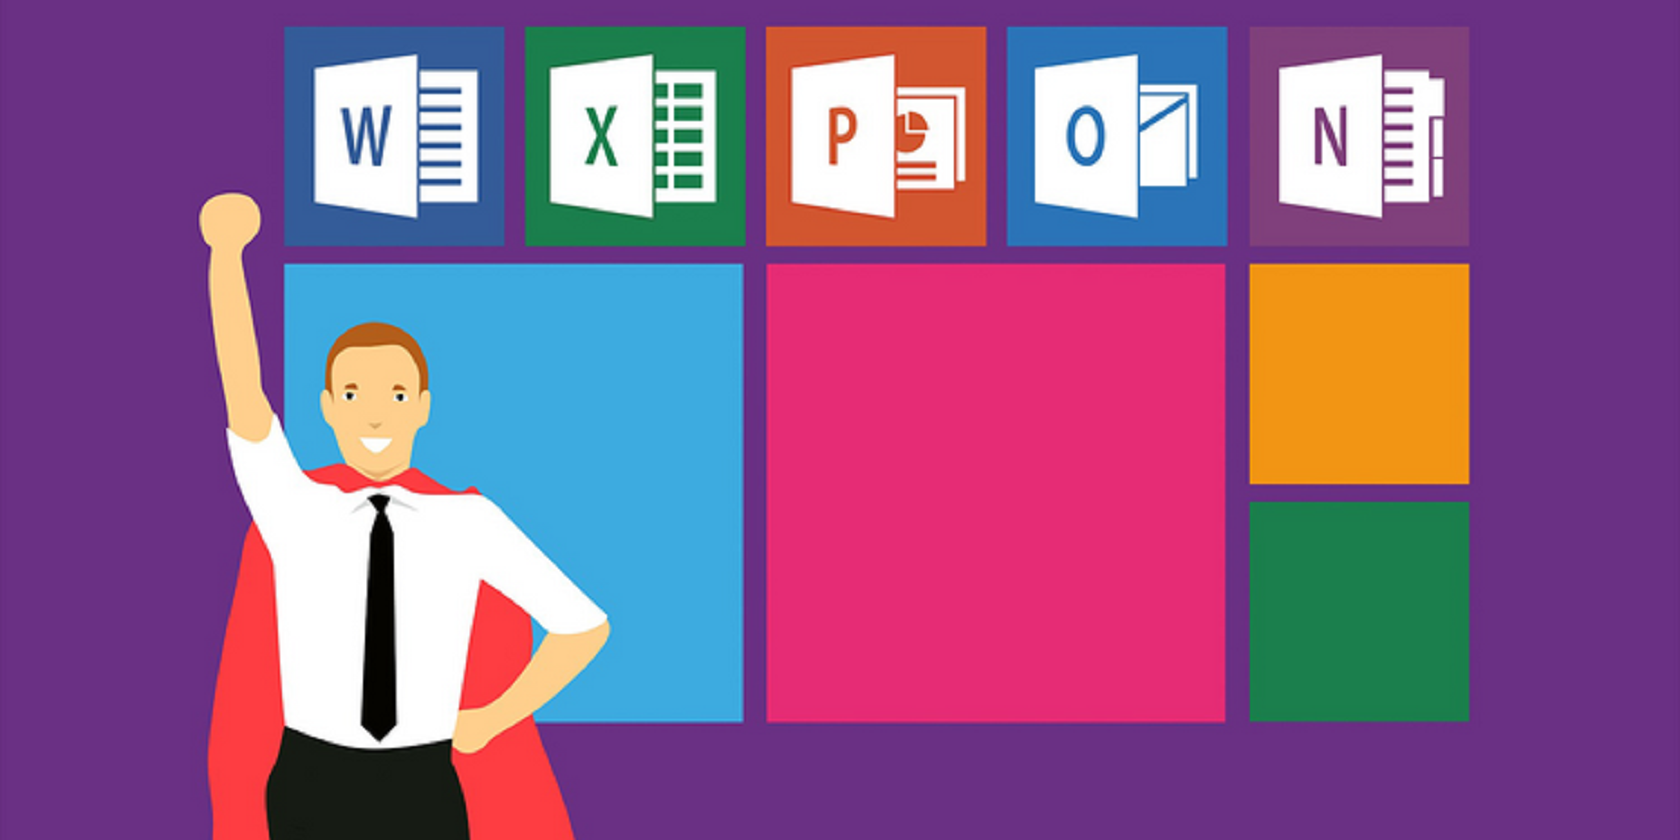 Need to Buy Microsoft Office? Here's How to Get a Huge Discount